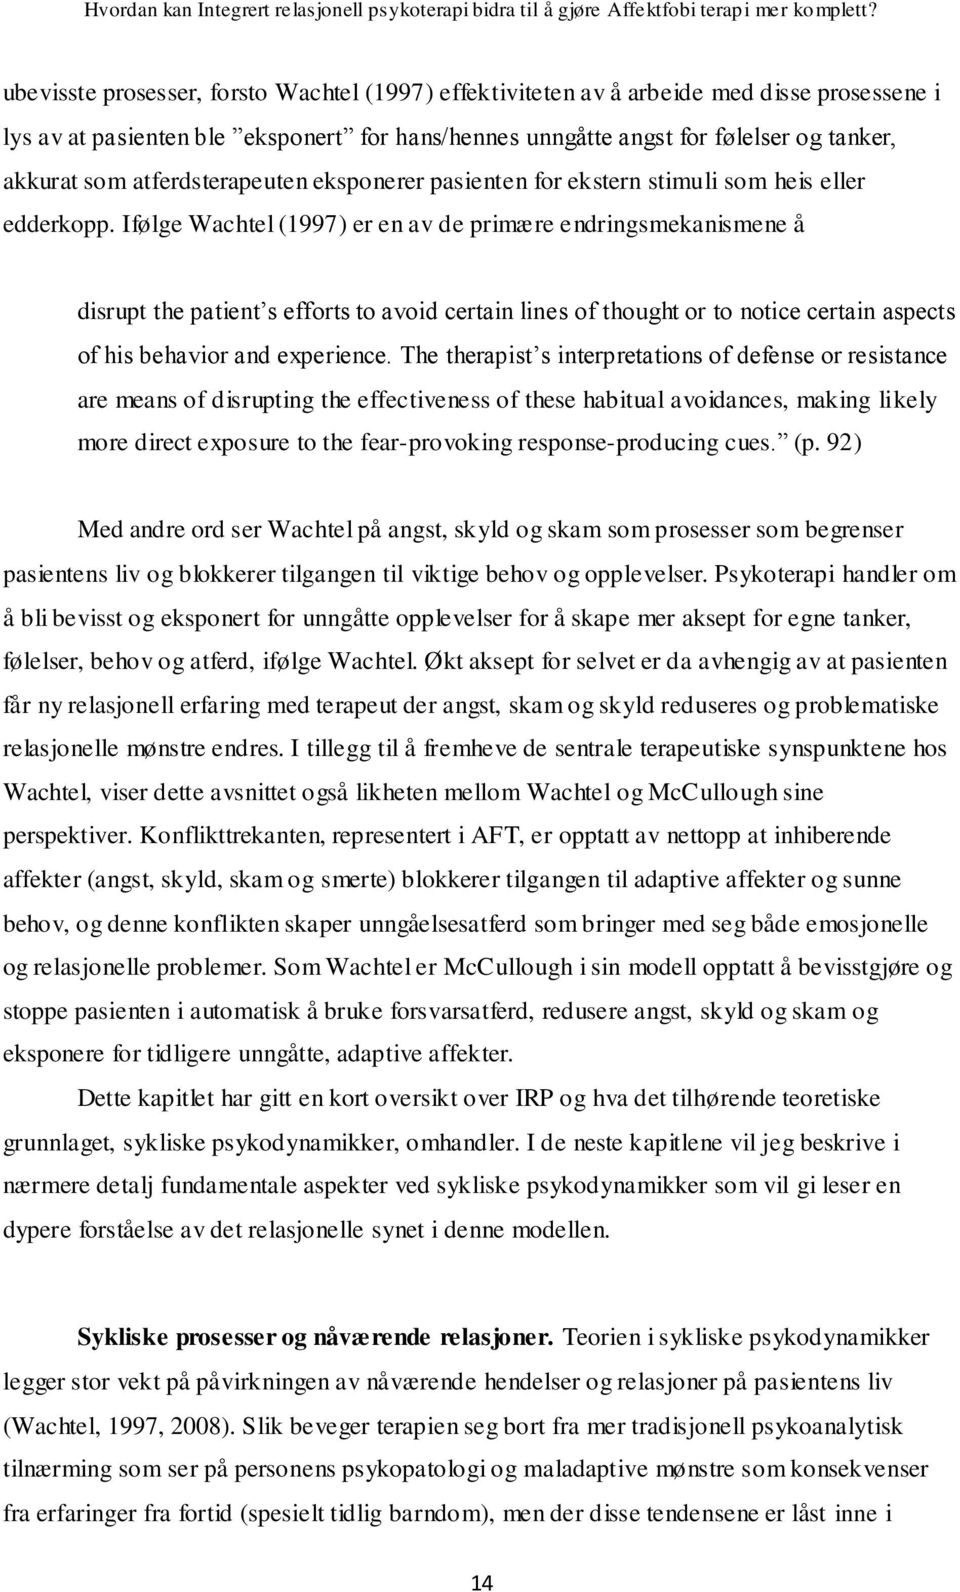 Ifølge Wachtel (1997) er en av de primære endringsmekanismene å disrupt the patient s efforts to avoid certain lines of thought or to notice certain aspects of his behavior and experience.